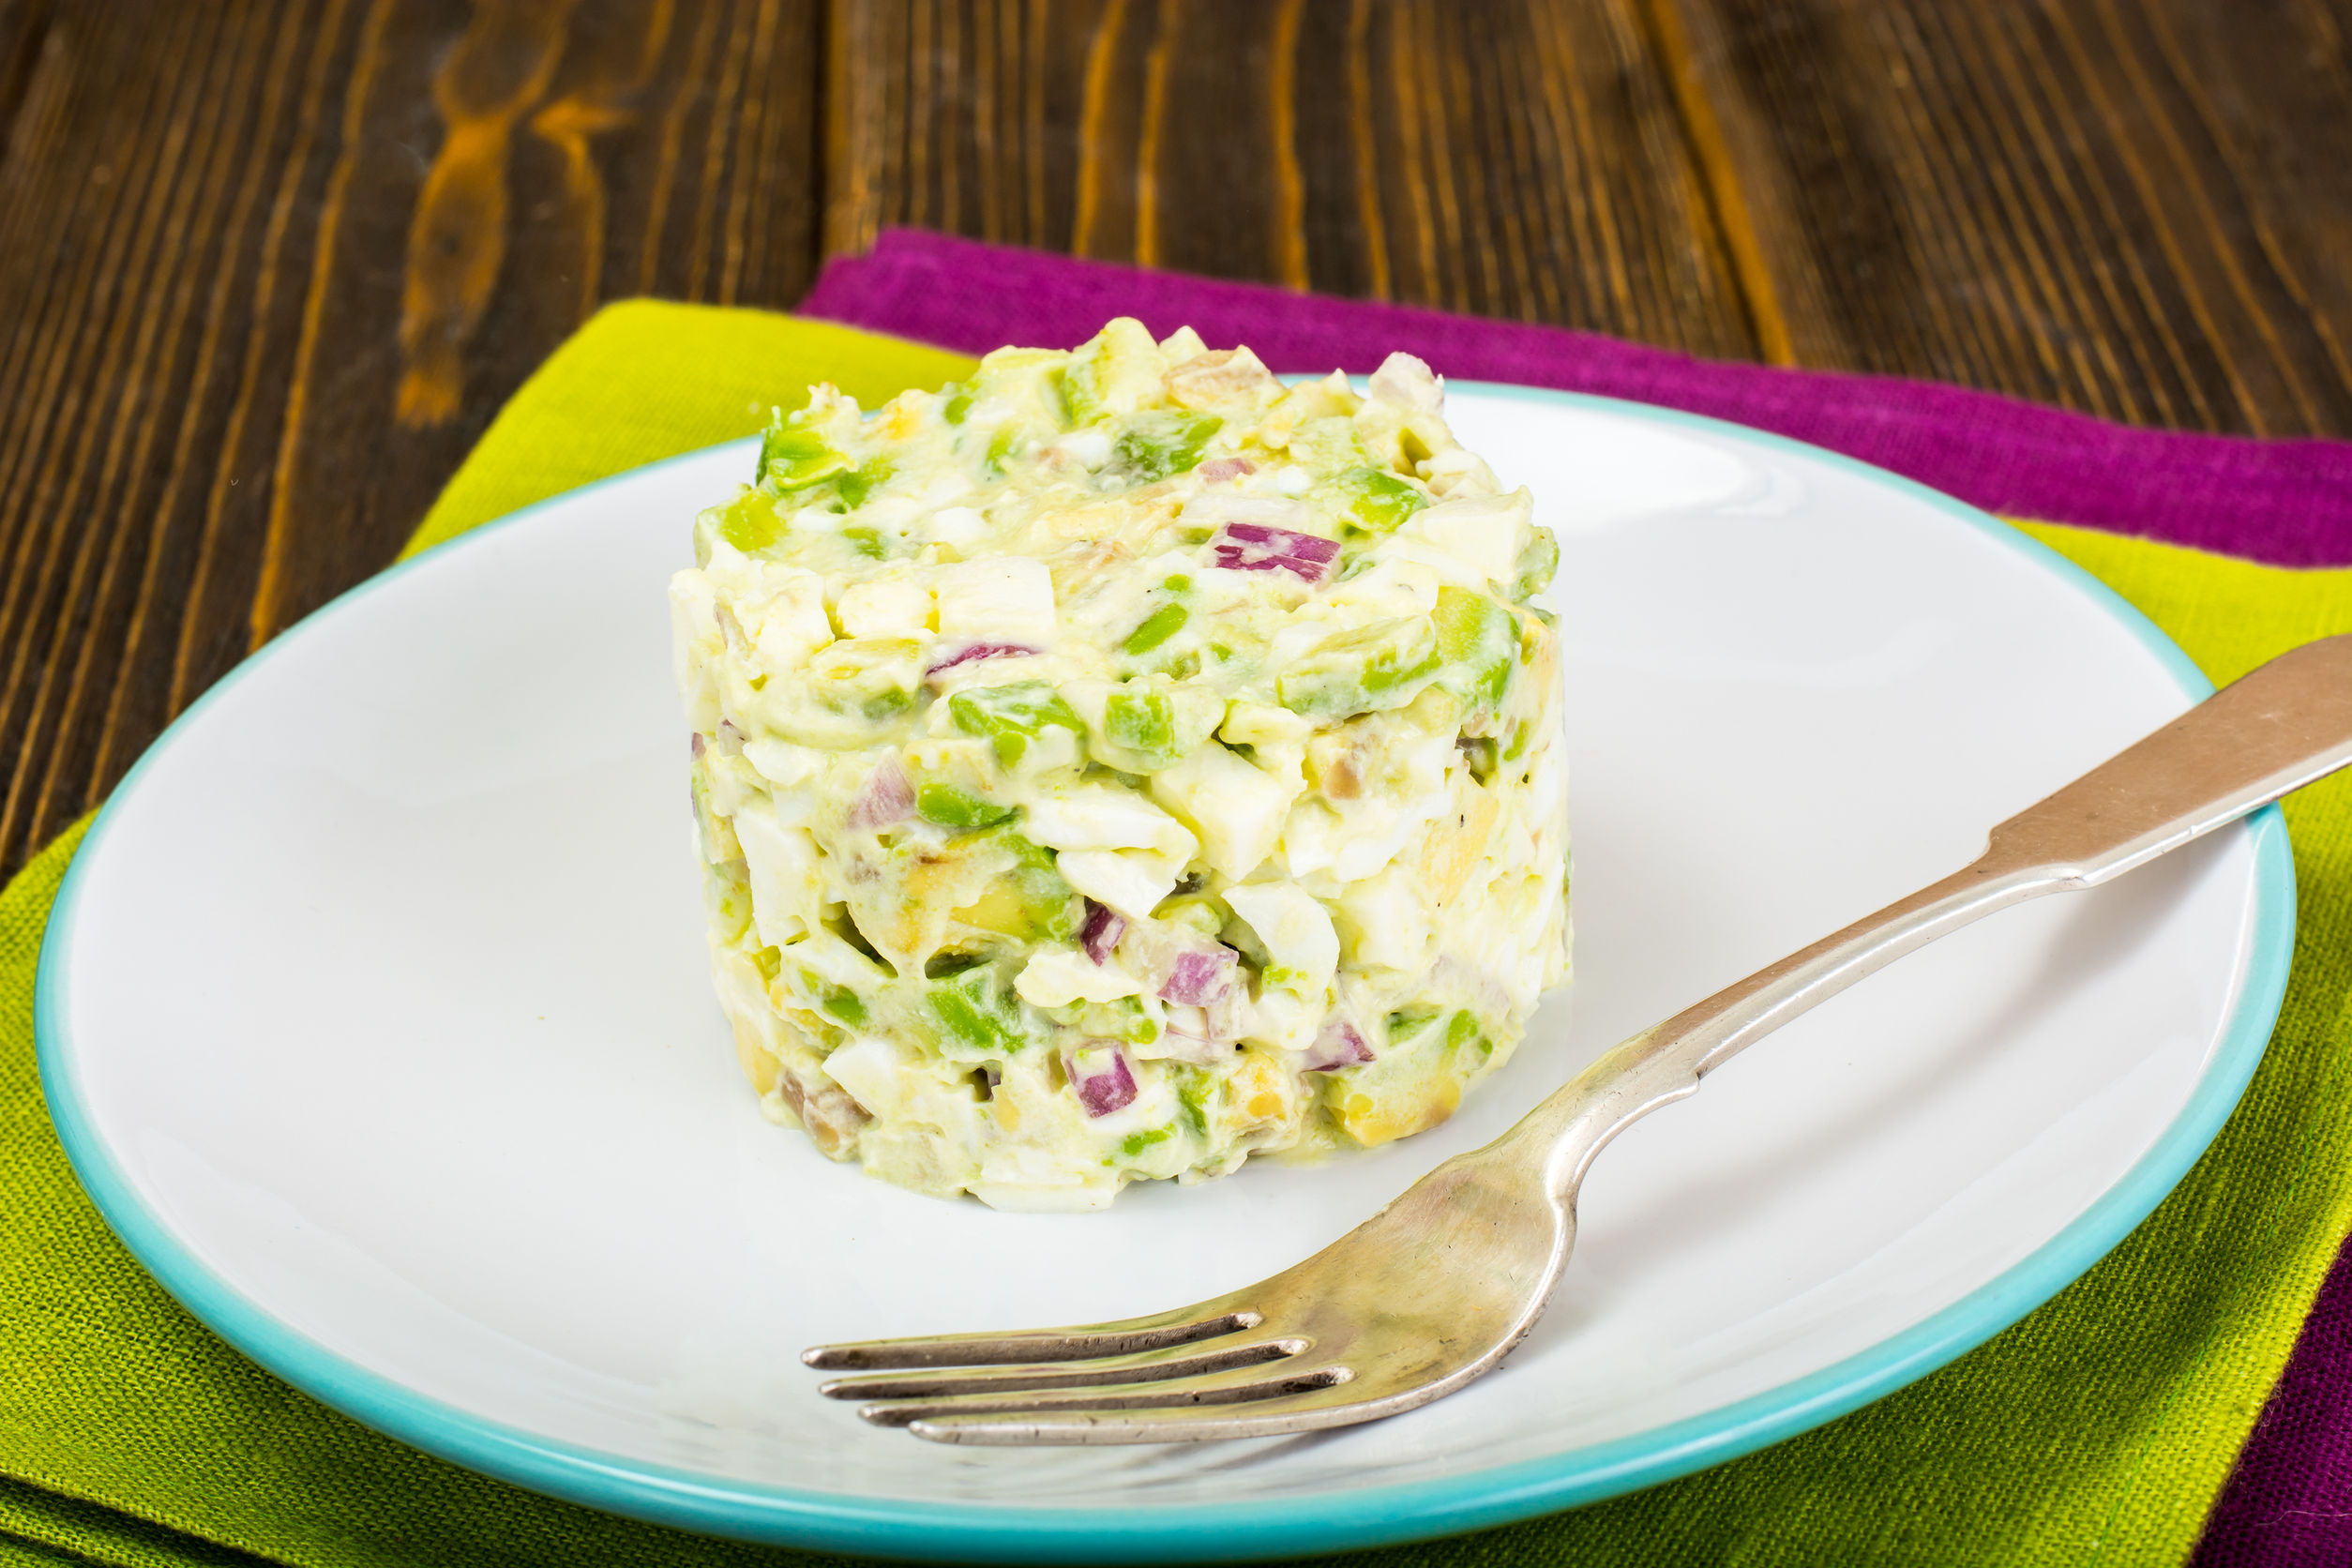 Egg and avocado salad